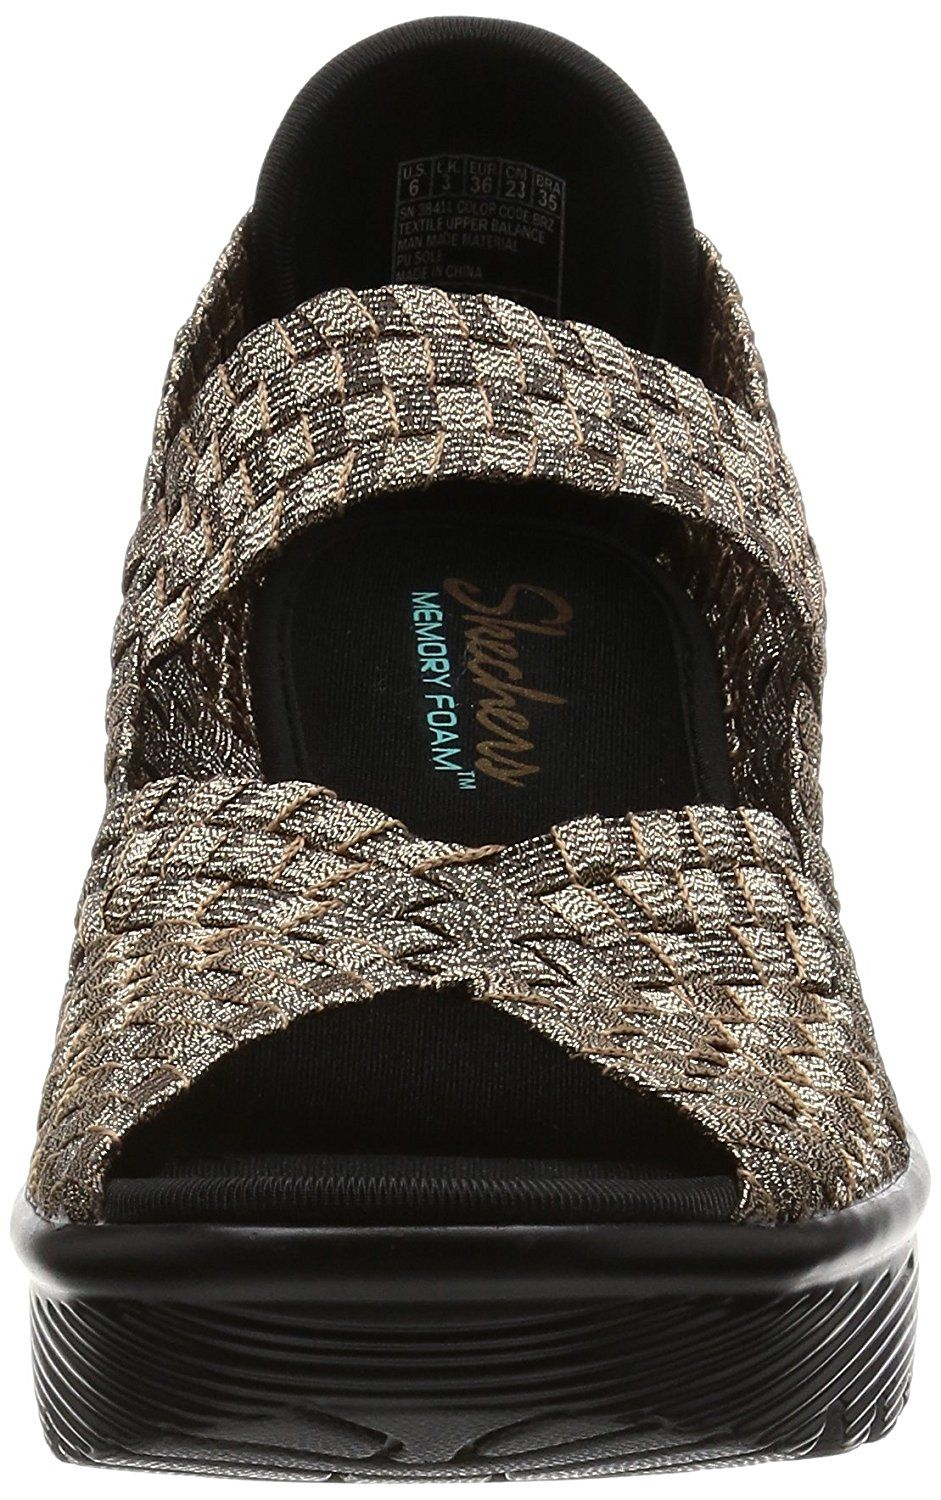 8762e6984f39 Skechers Cali Women s Parallel Weave It Be Wedge Sandal     Be sure to check